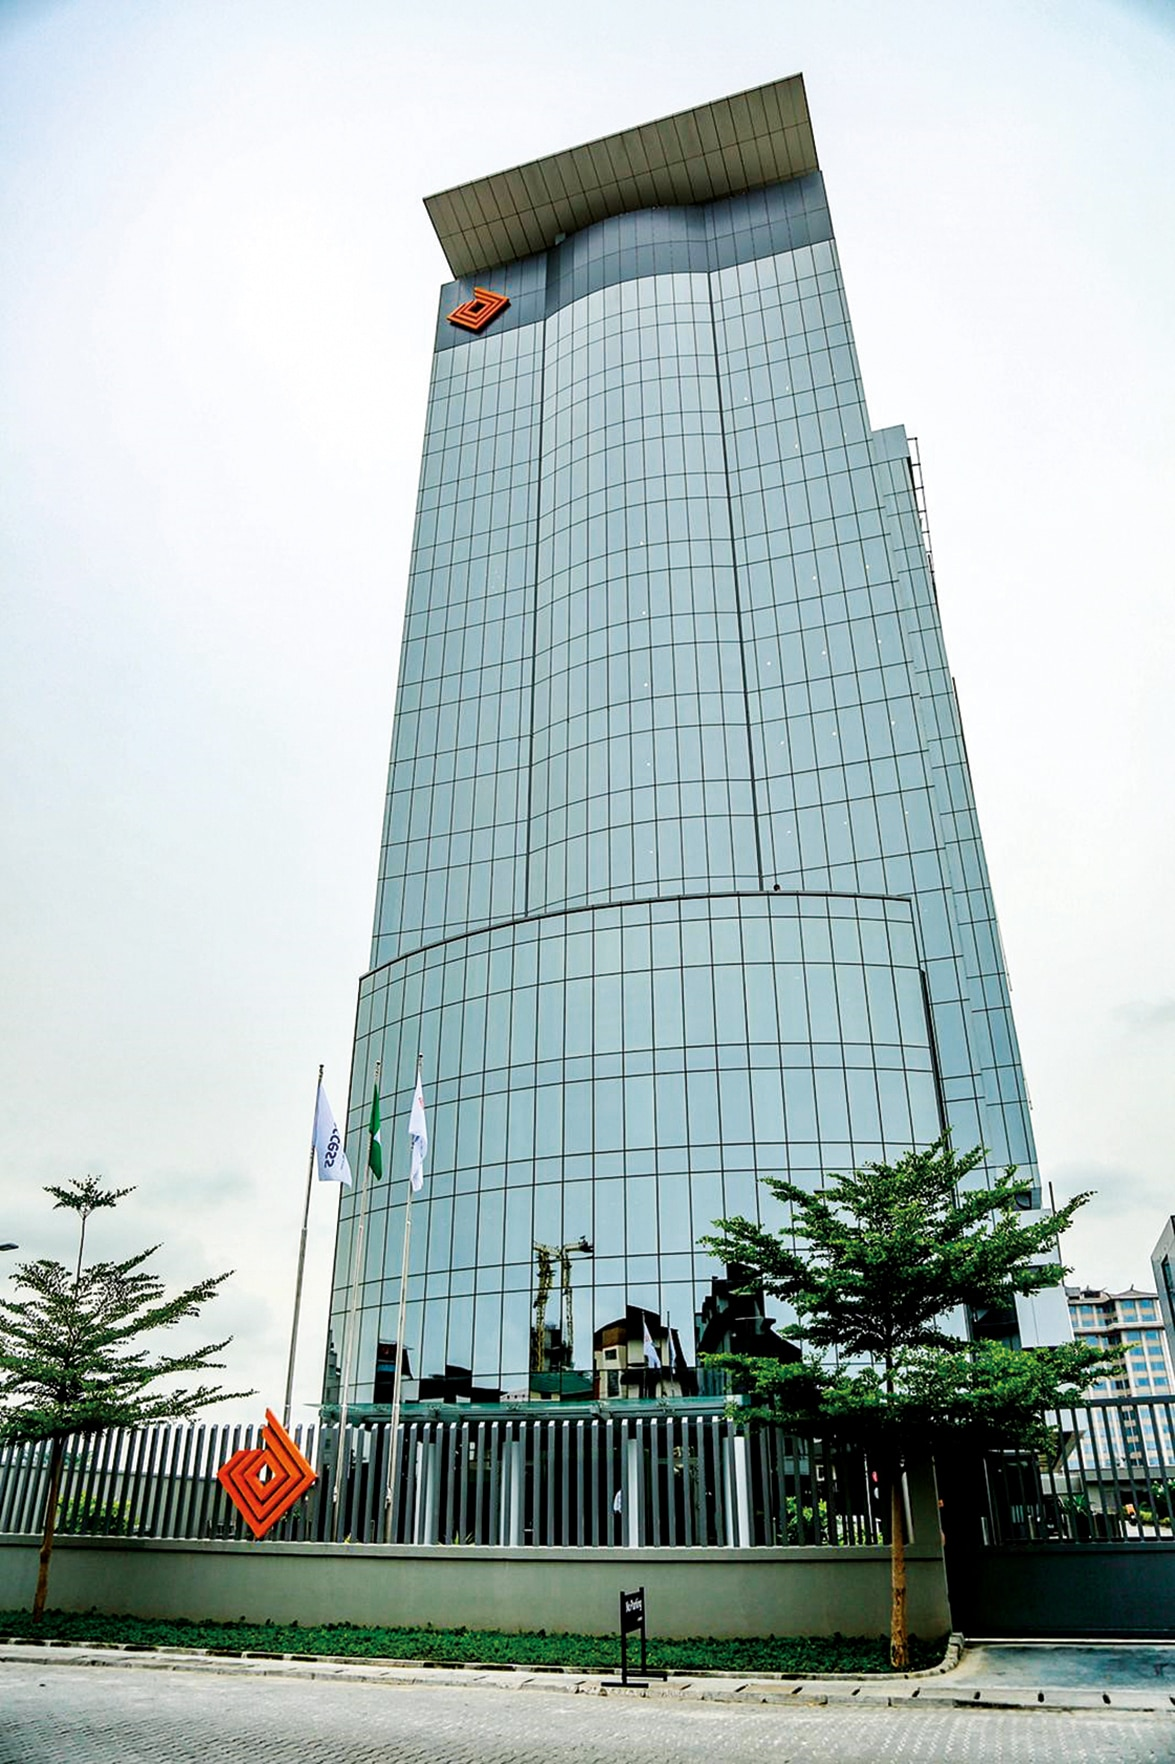 Access Bank: Effective governance | Ethical Boardroom